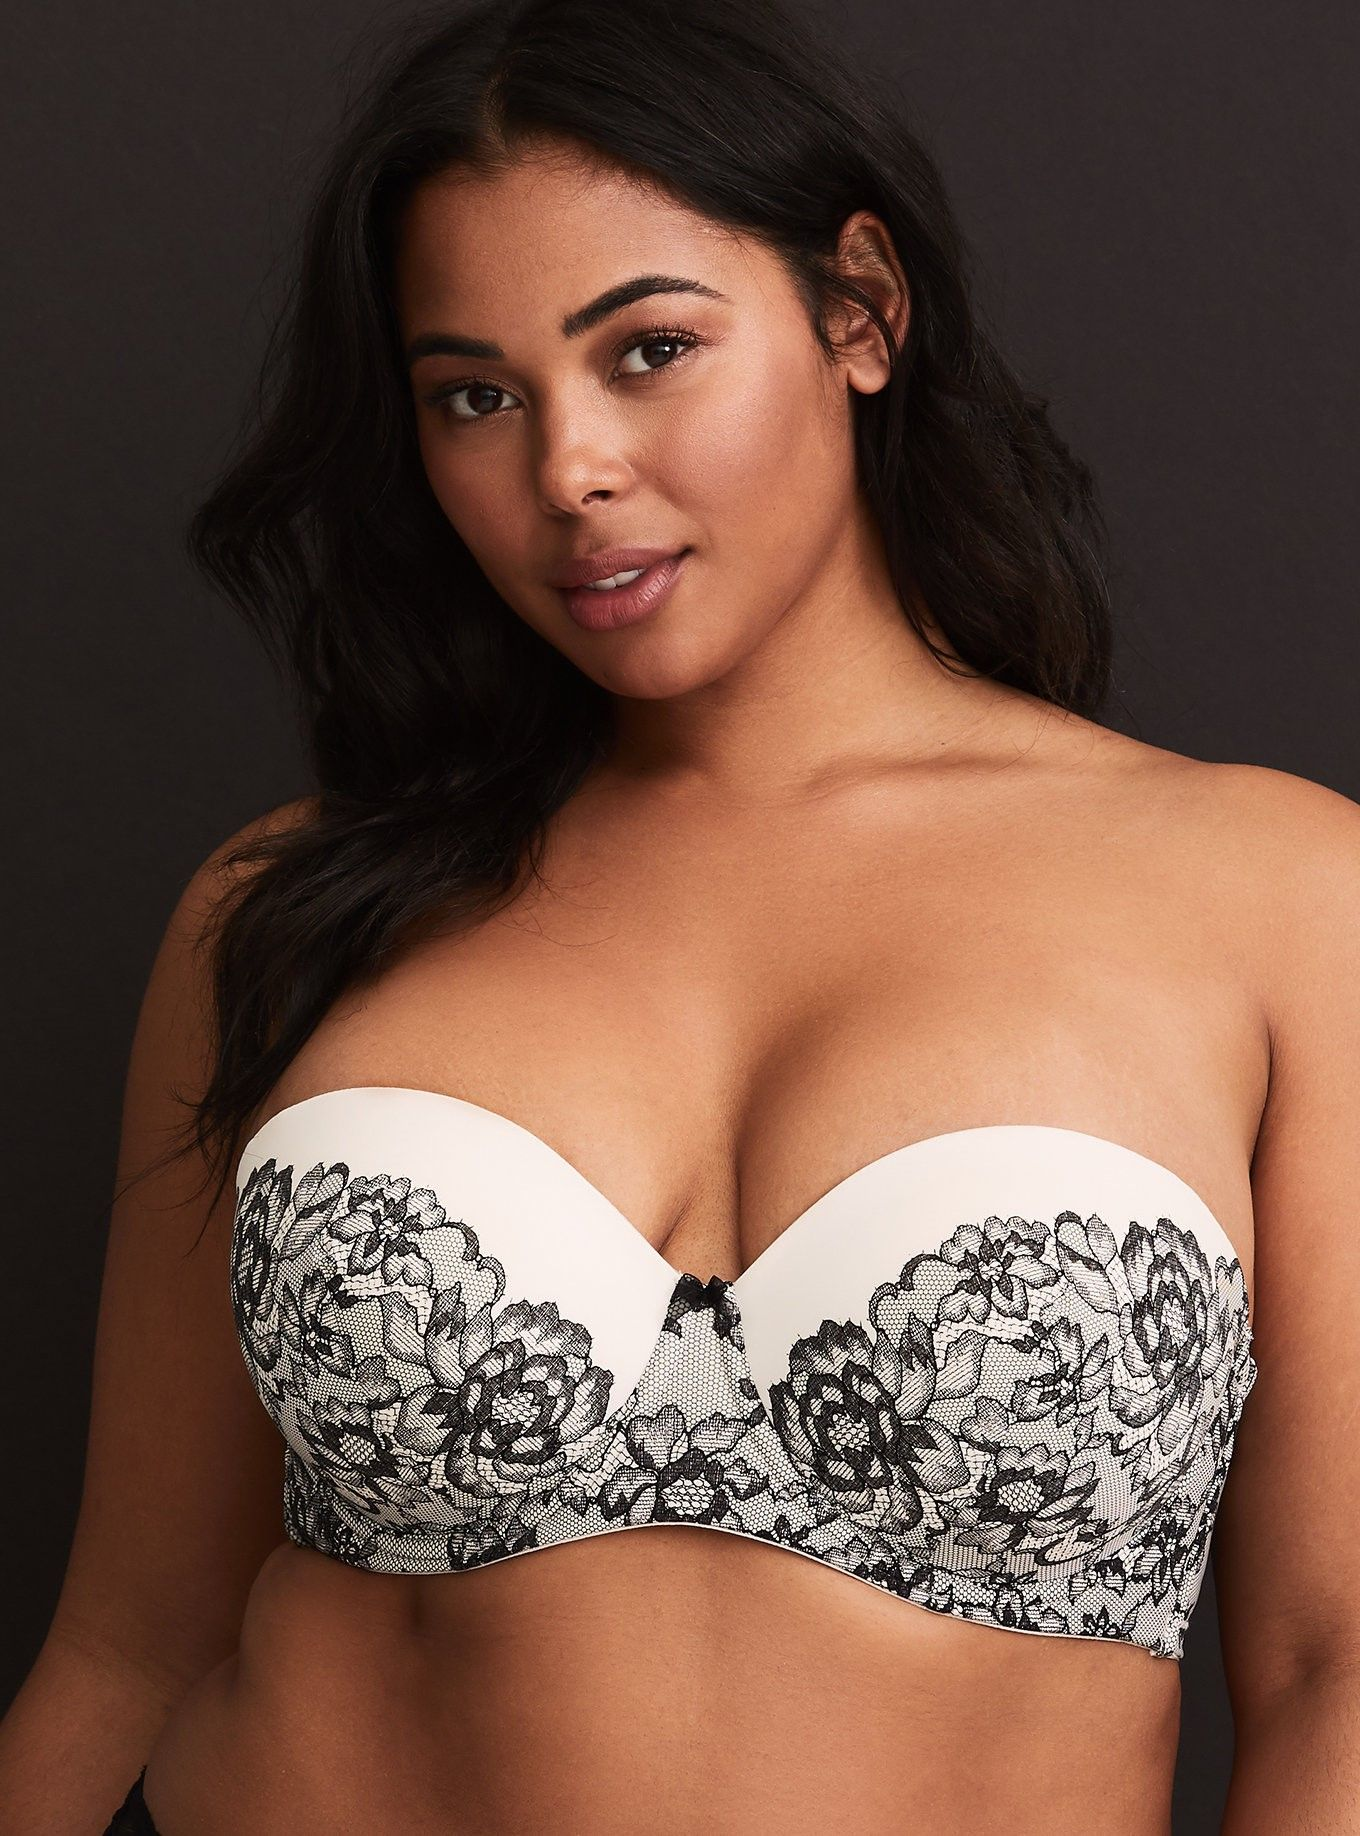 e84015716 Black   White Floral Print Push-Up Strapless Bra - This strapless bra is  crafted in a contrast floral lace design for the look of lace with the  smooth cups ...